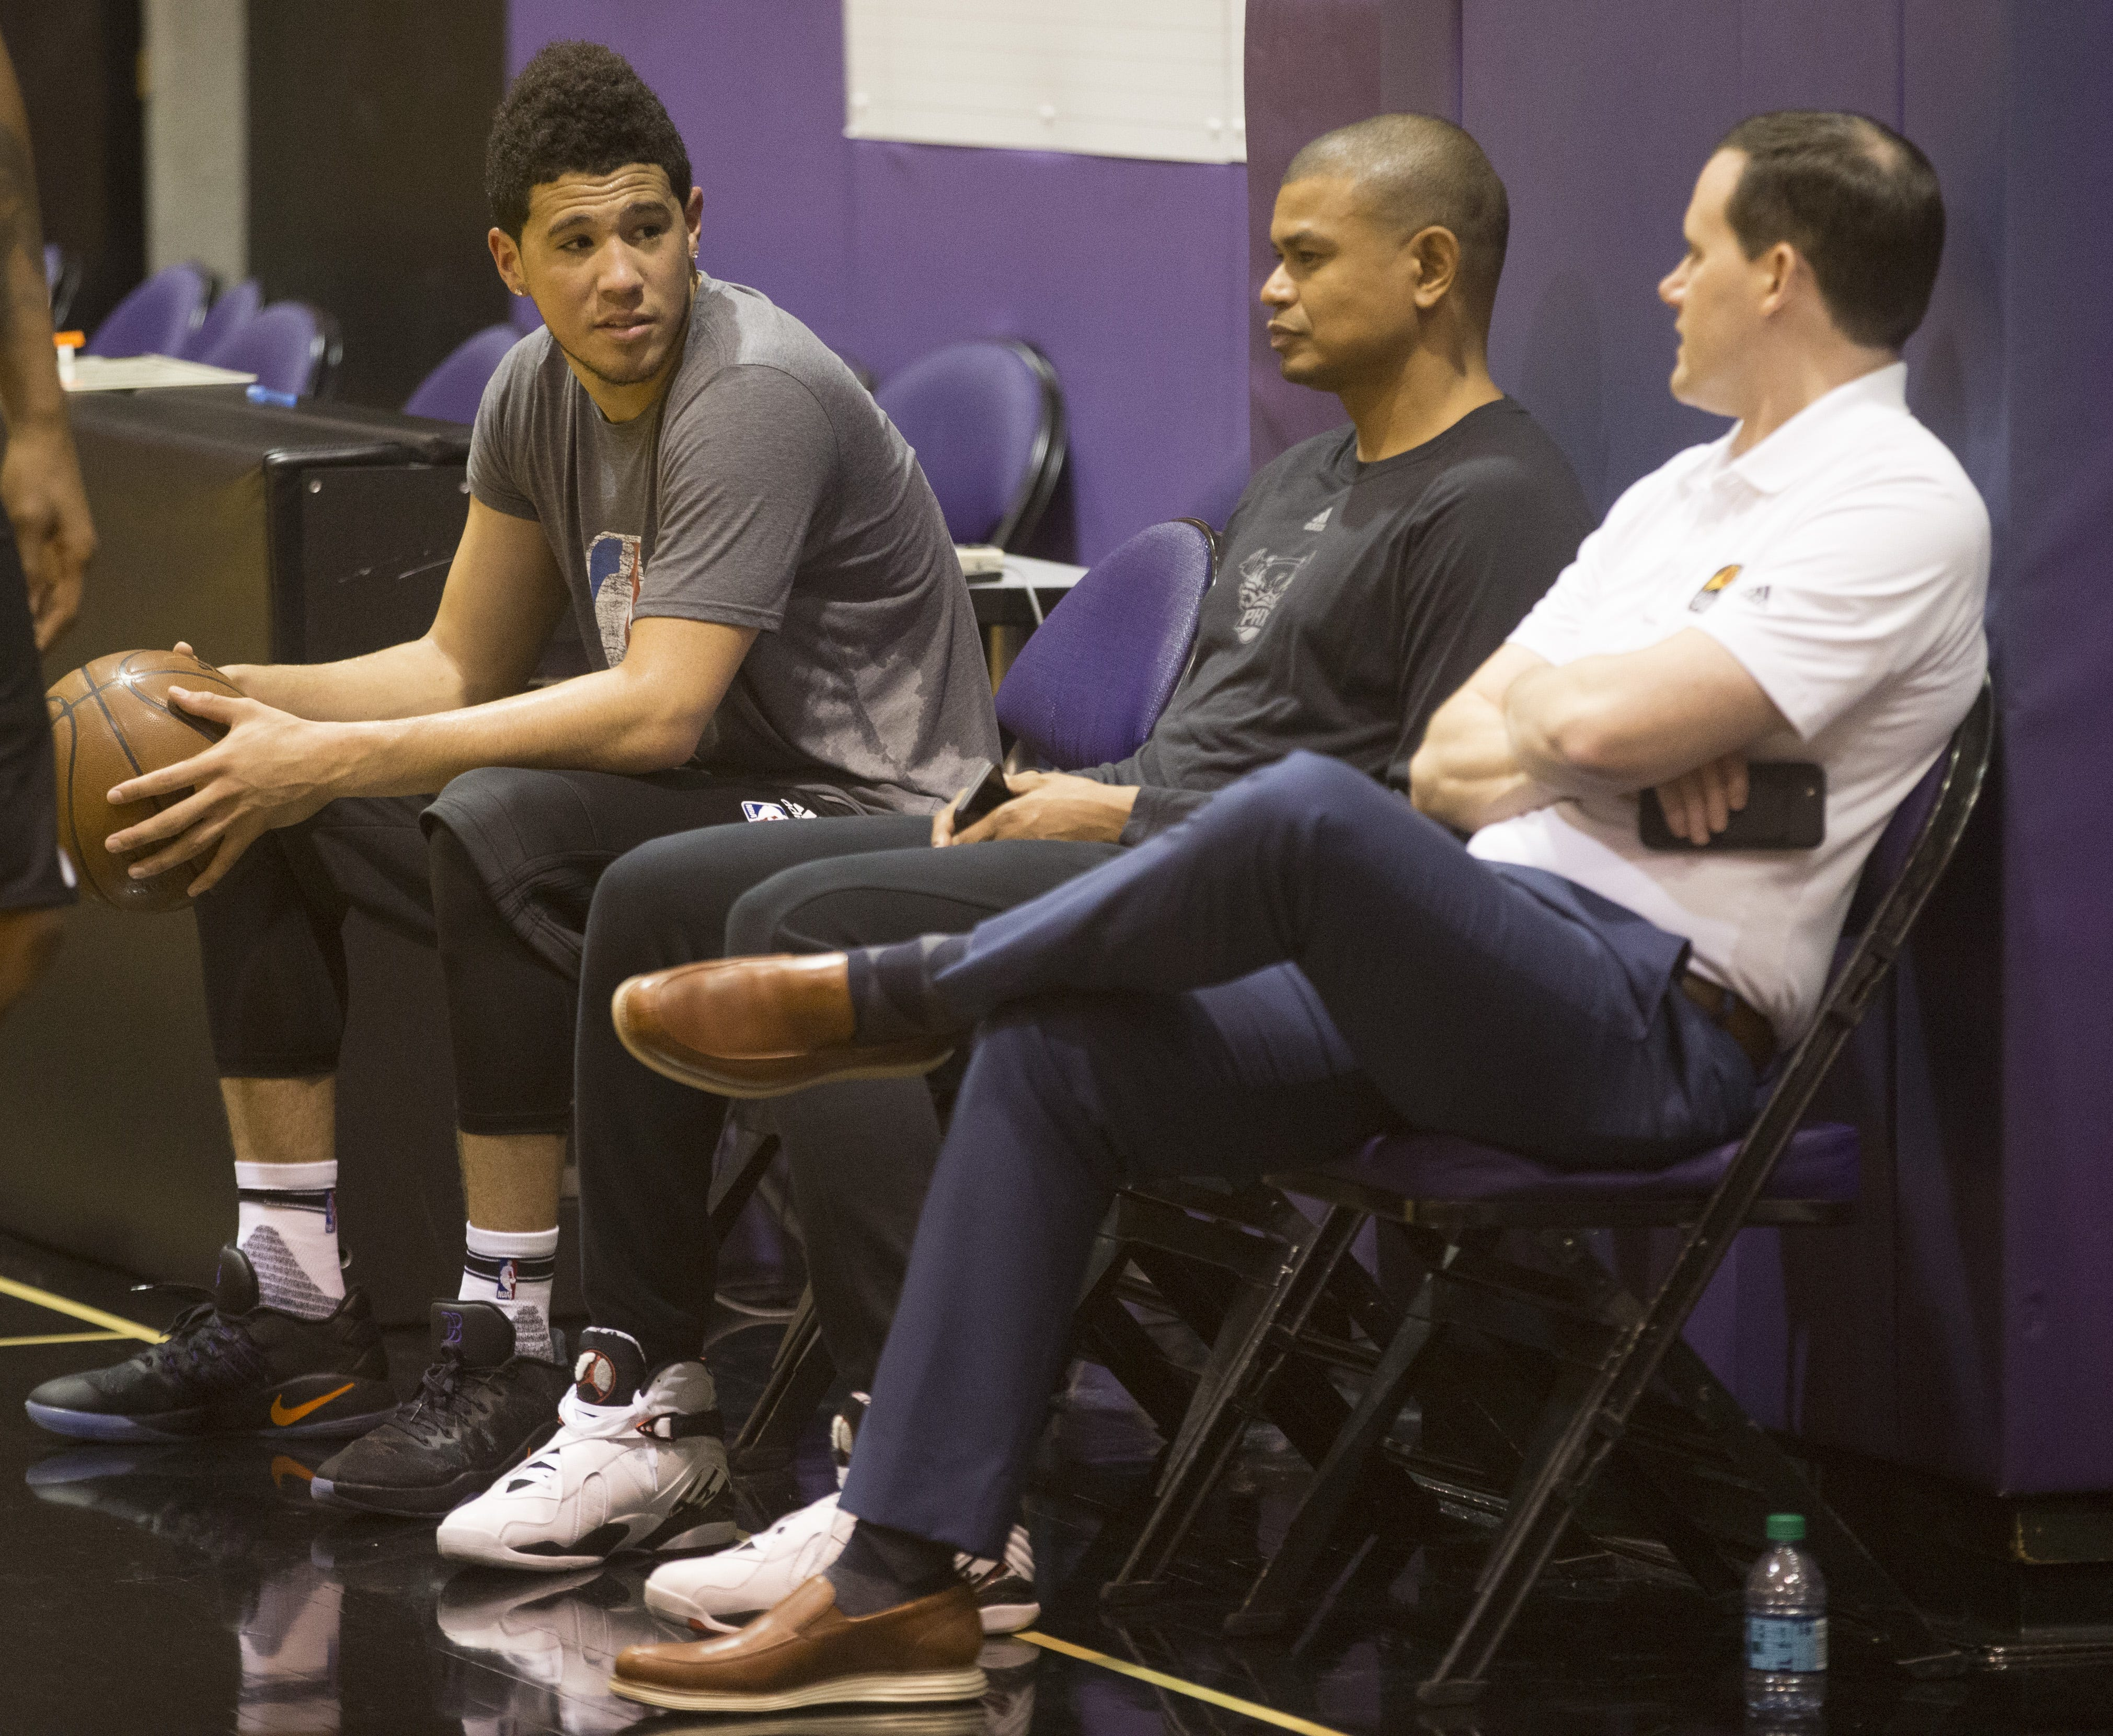 Former Phoenix Suns coach Earl Watson says he fought for Devin Booker, hope of franchise